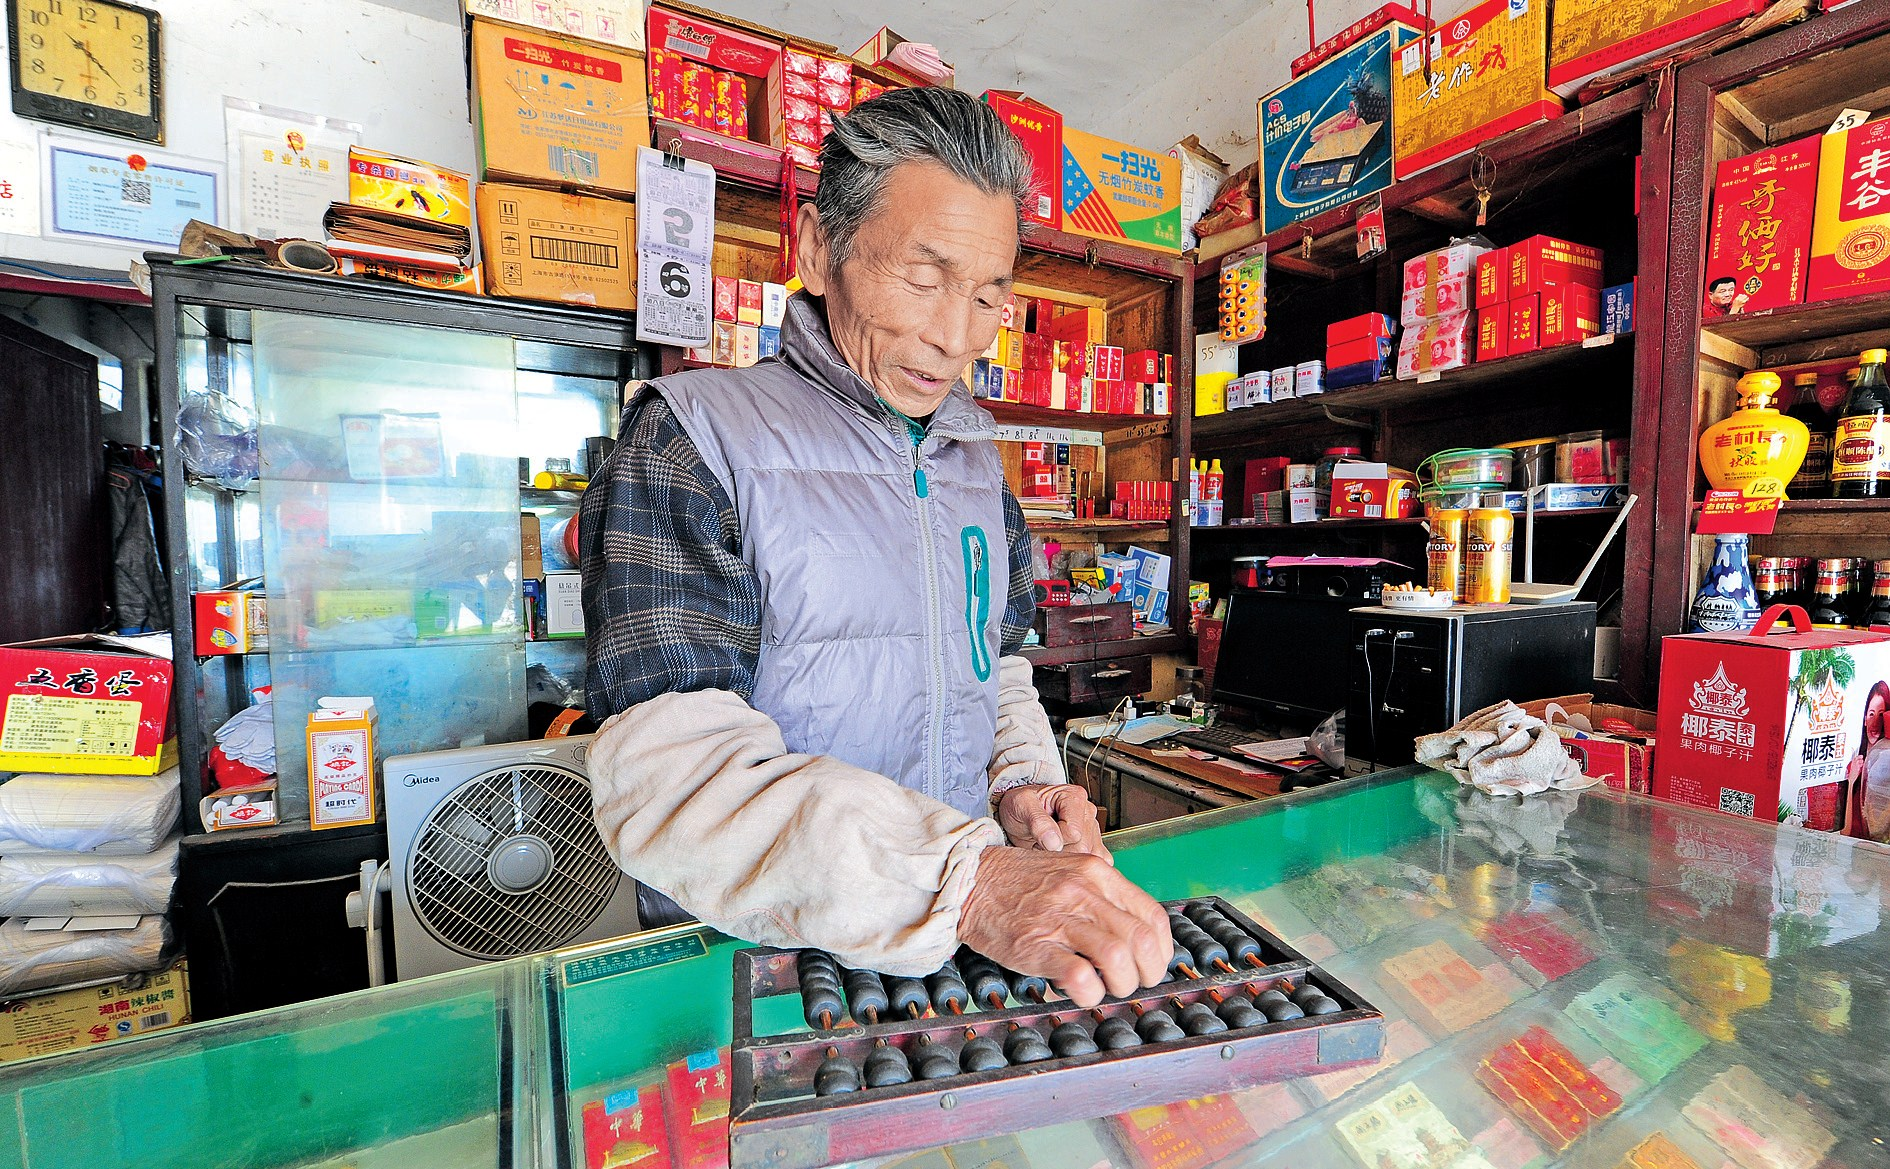 Guo Genfu, 70, uses a suanpan or an abacus in a convenience store which he has run for 48 years in Xinchuang village of Taicang City in Jiangsu Province. Guo still keeps the old habit of calculate with a suanpan when doing business. — IC